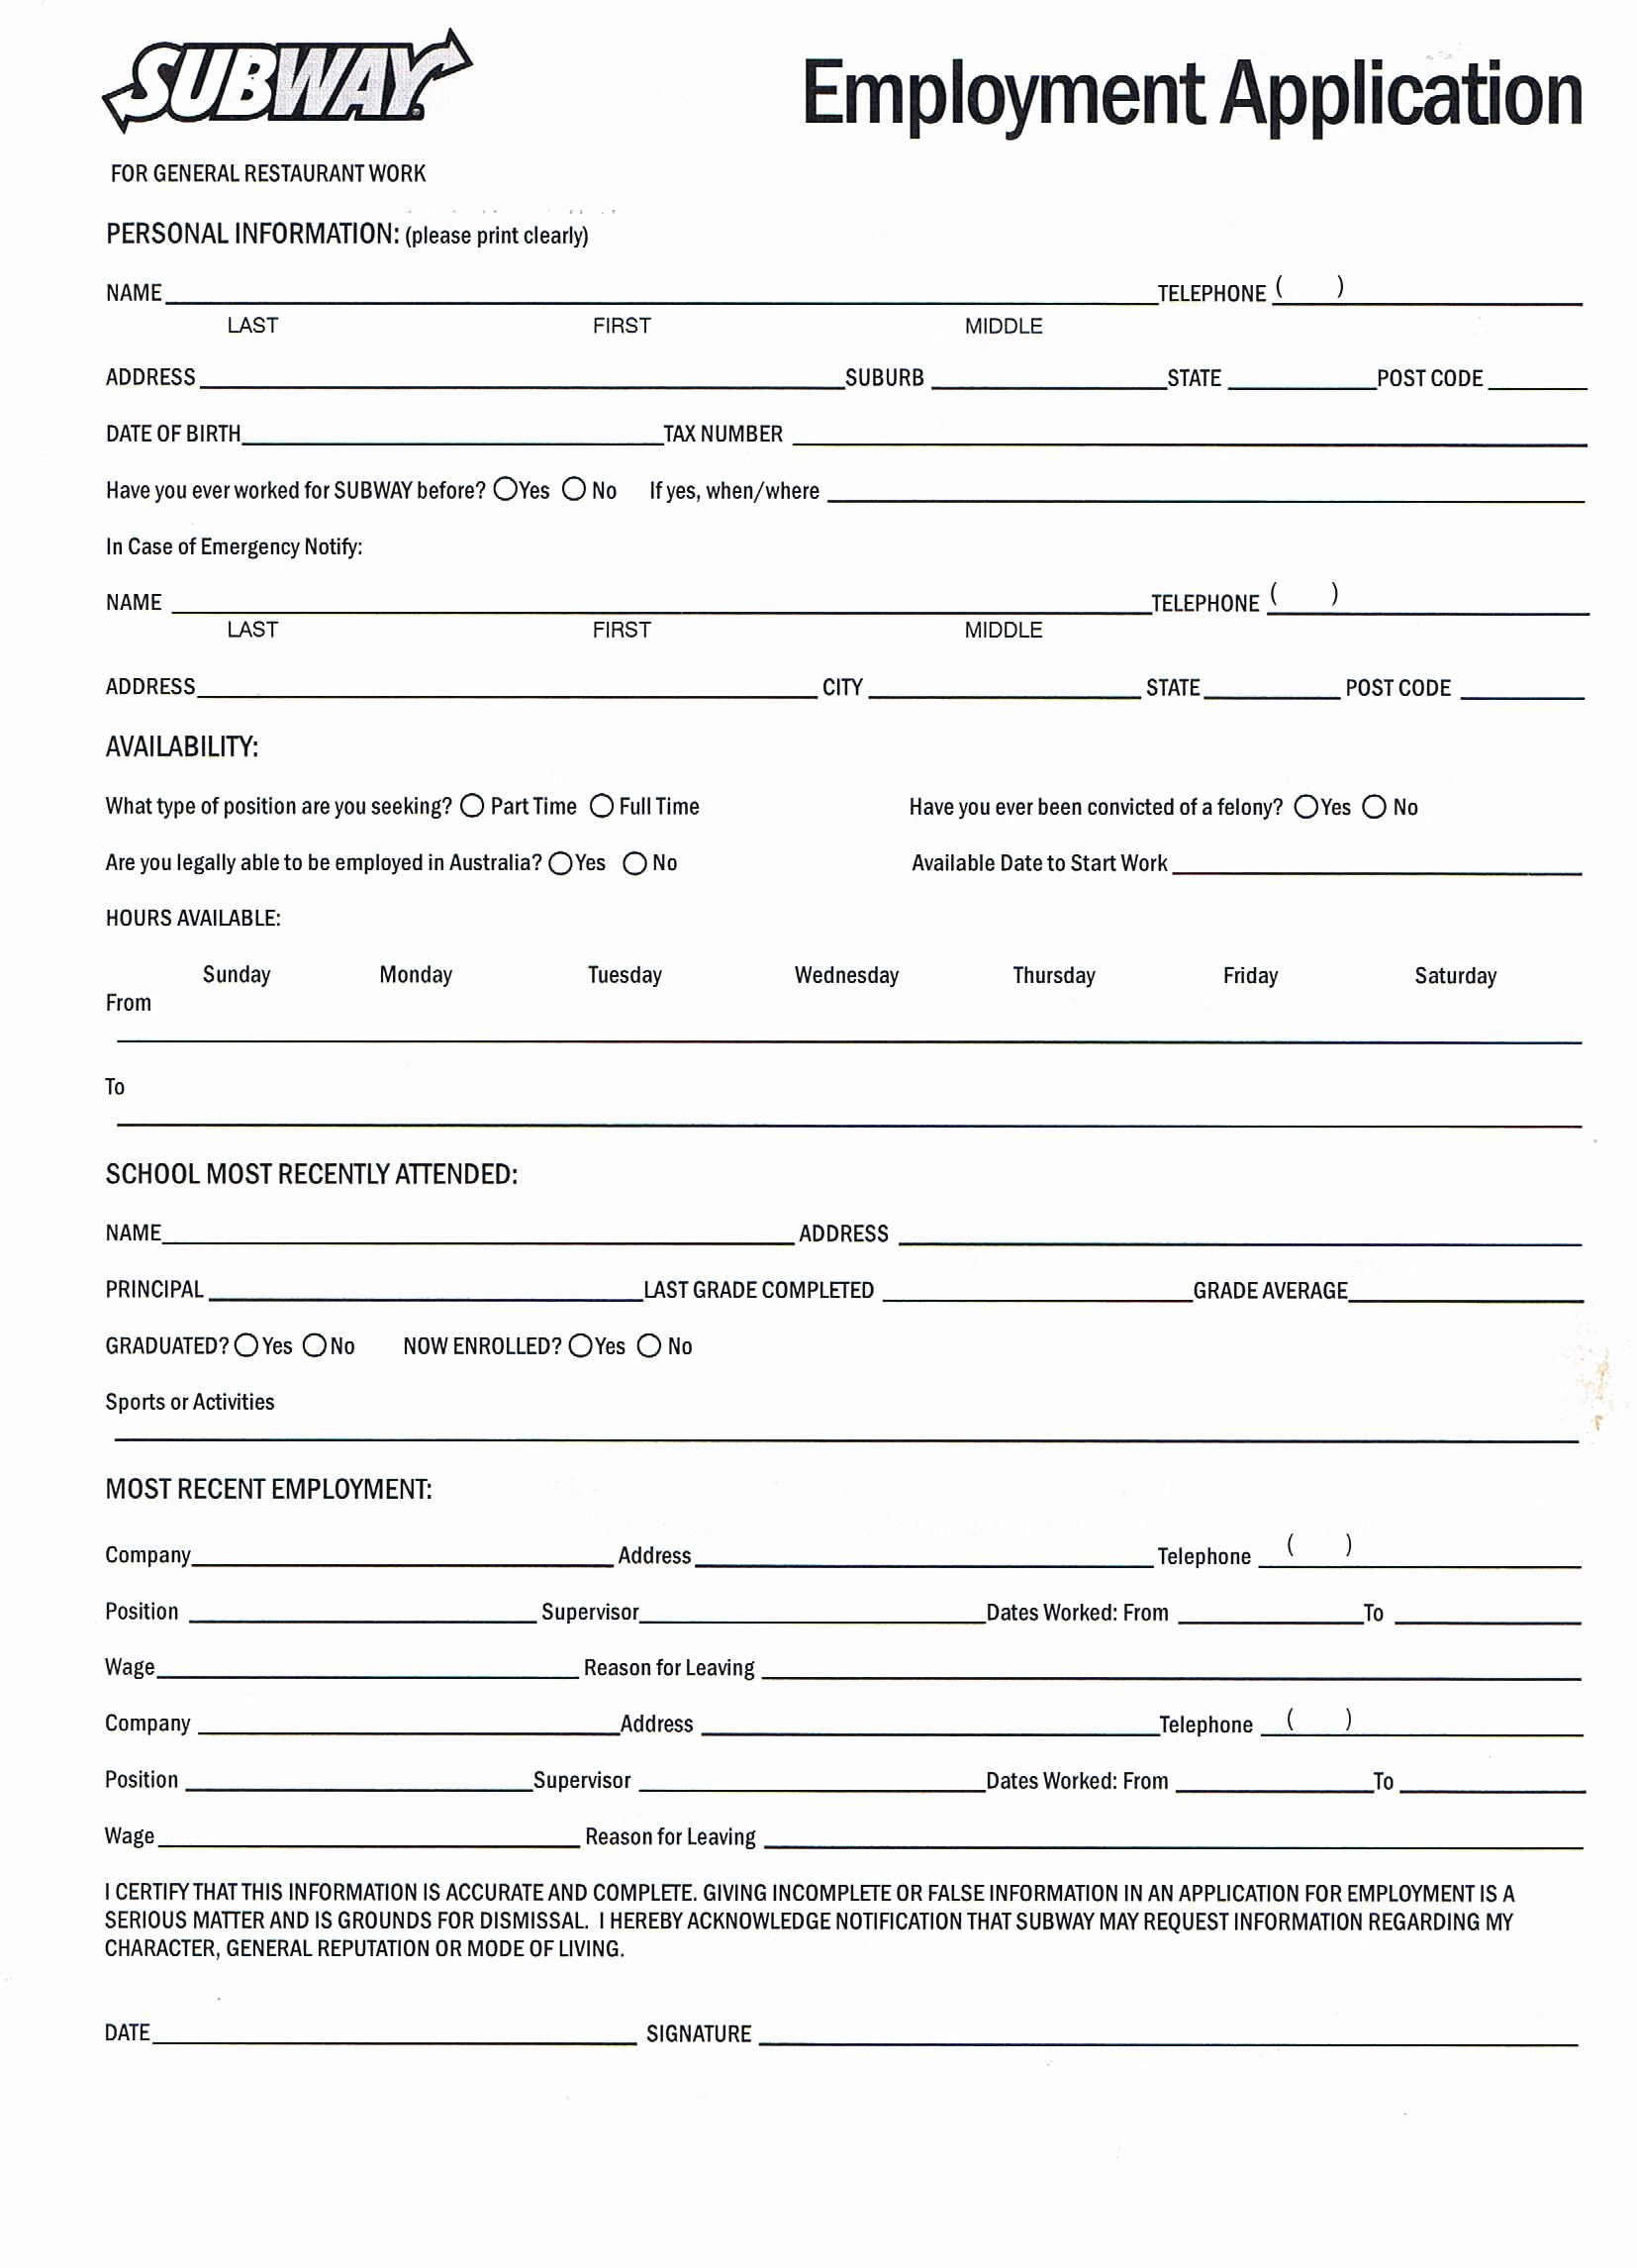 Application for Employment Free Fresh Printable Job Application forms Online forms Download and